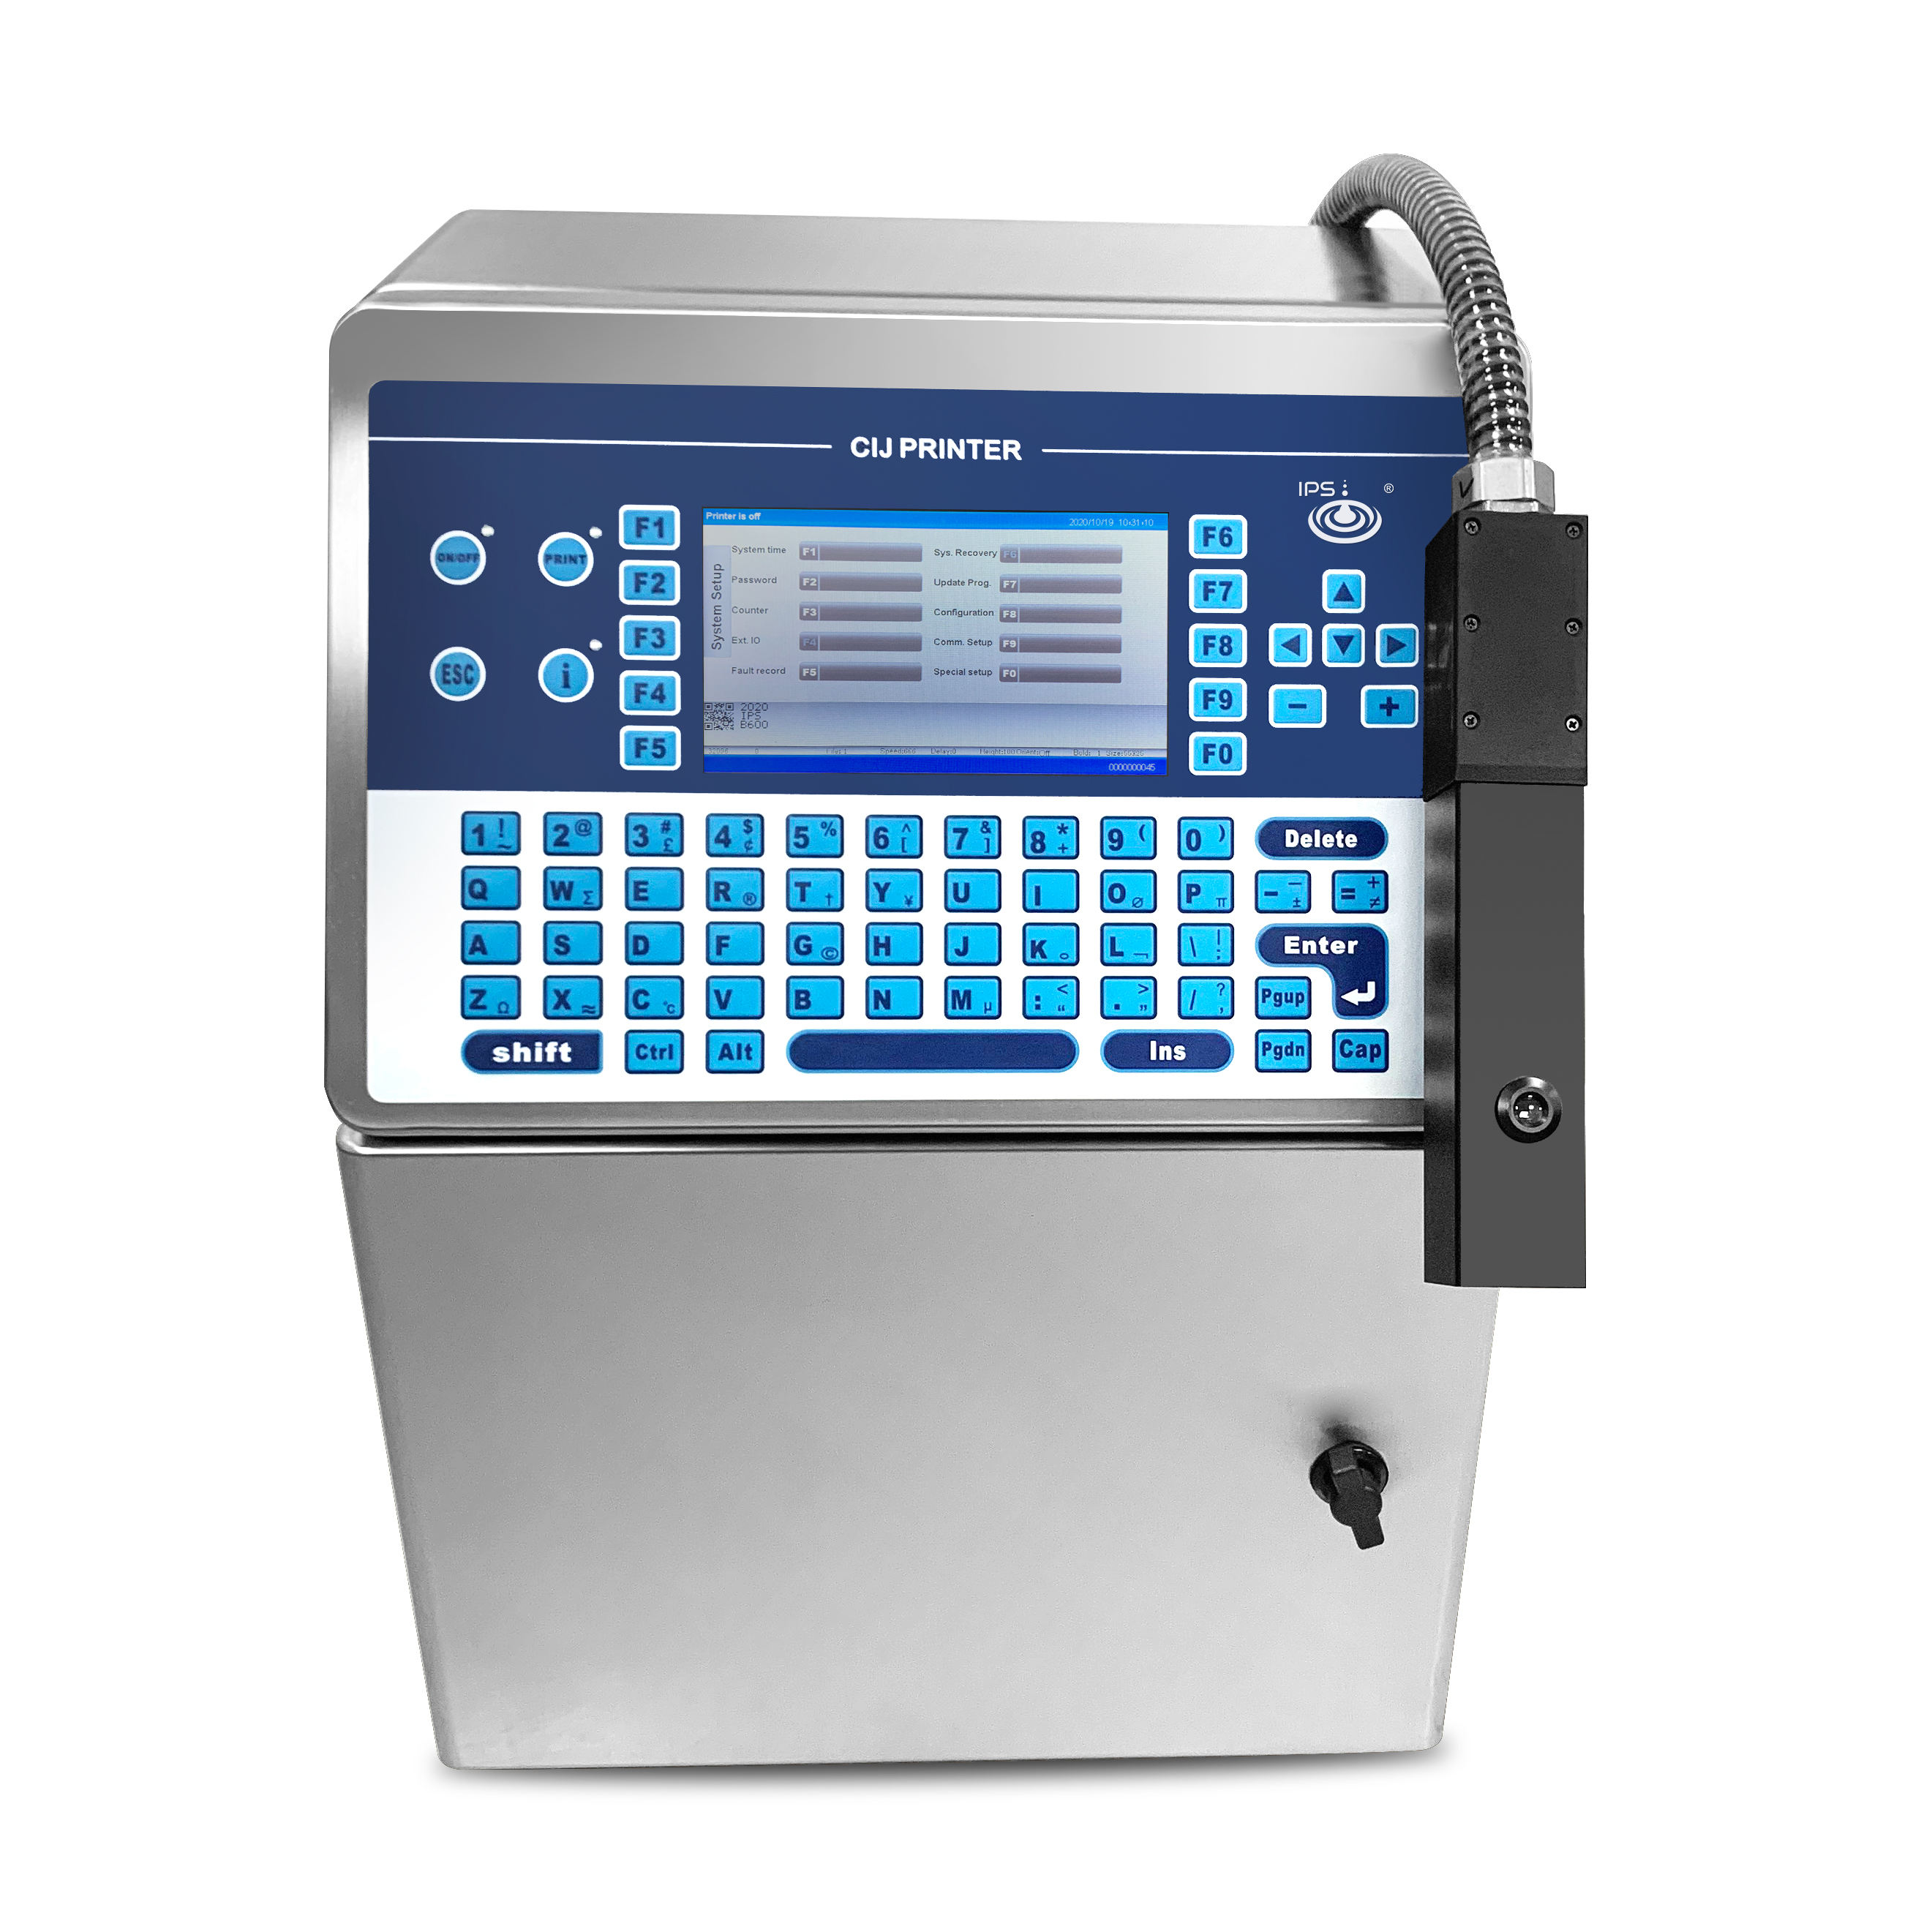 Usb Port Continuous Industrial Serial Number/Barcode High Resolution Inkjet Printer Printing Coding Machines